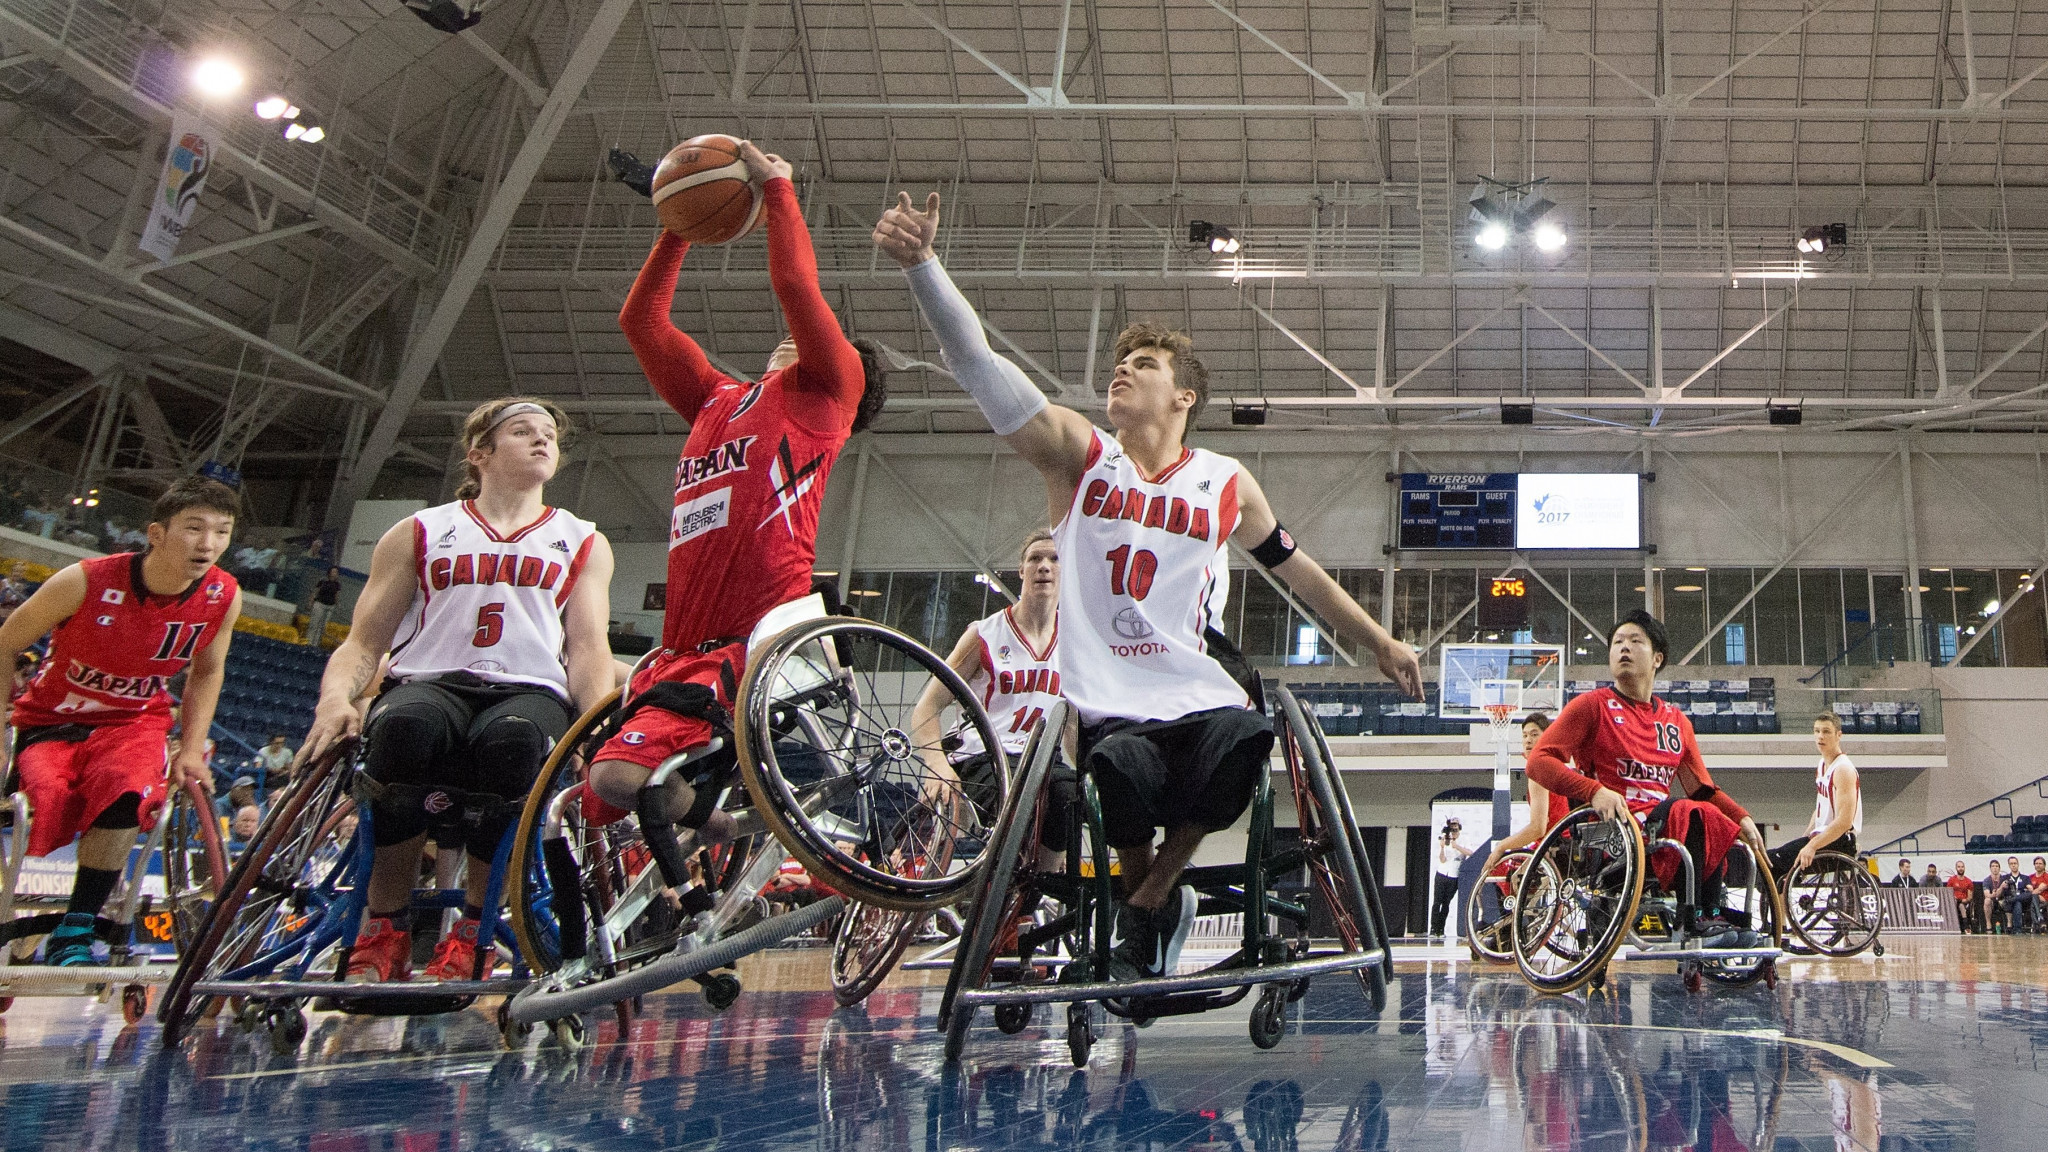 COVID-19 pandemic forces 2021 IWBF Under-23 Men's World Championship to move to 2022